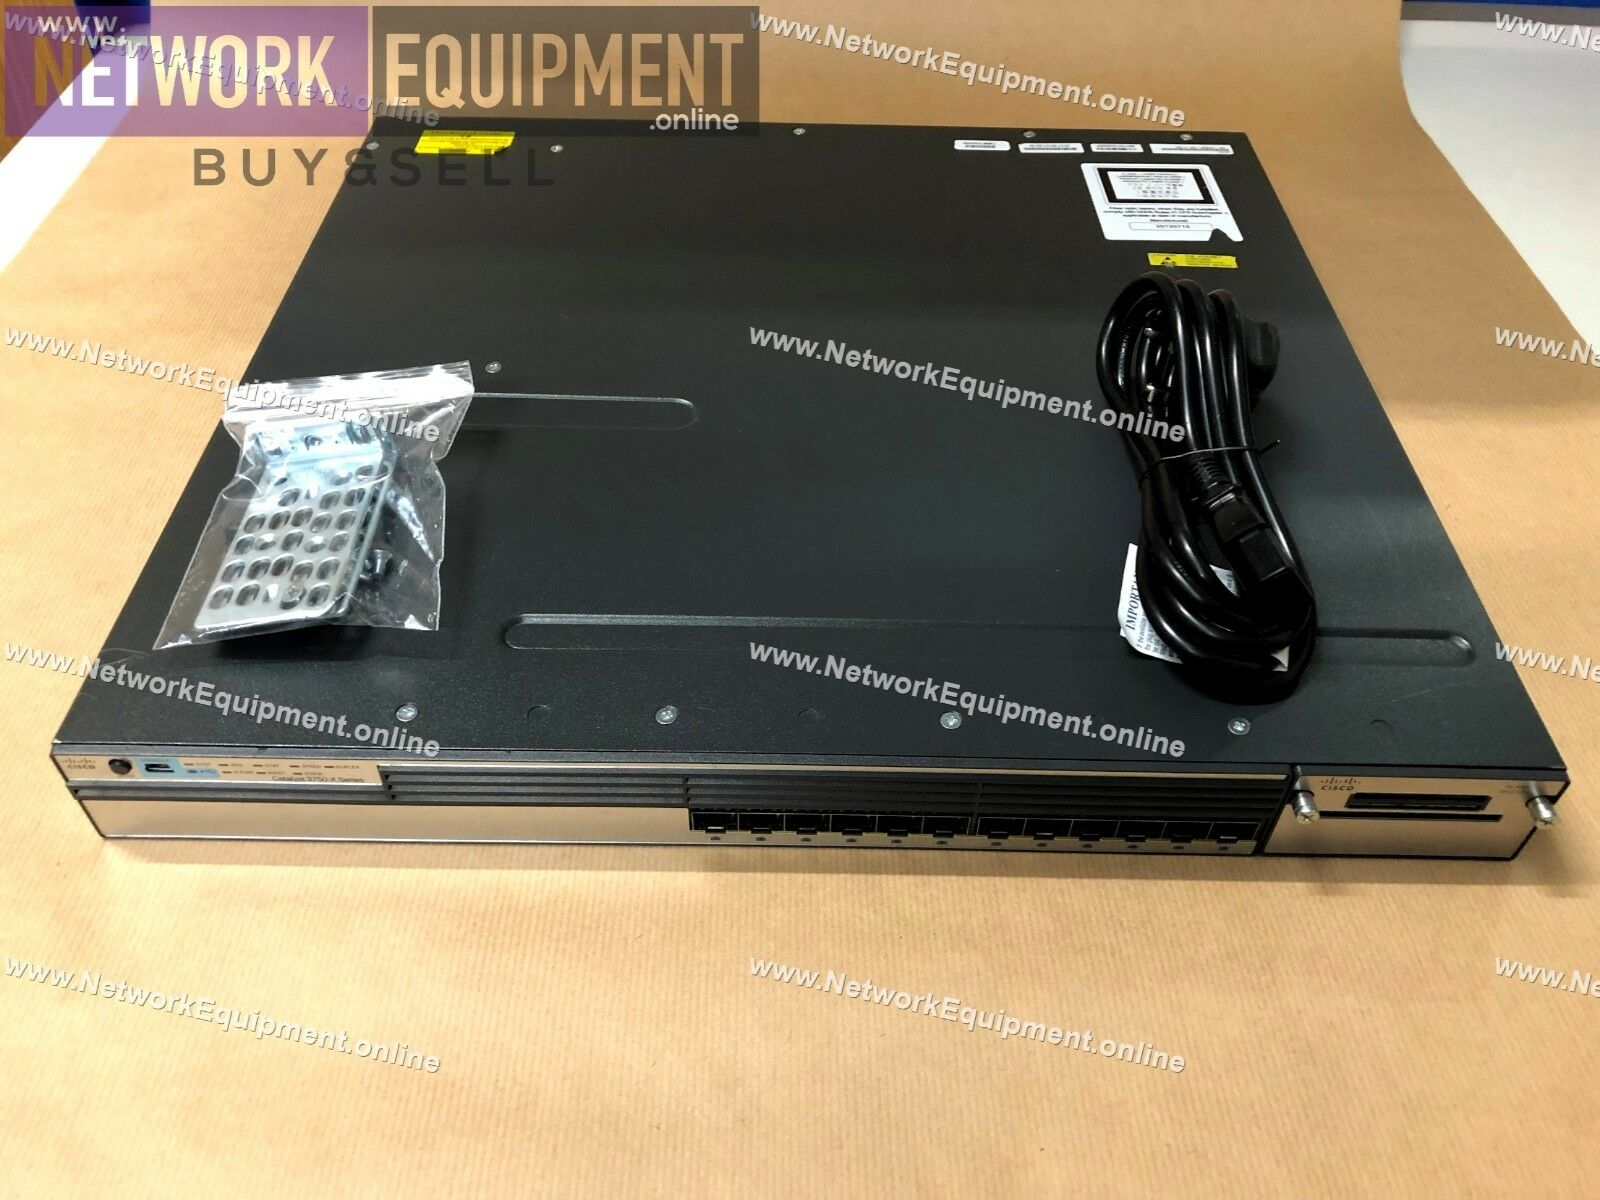 Cisco WS-C3750X-12S-E 12 x SFP Gigabit switch, 10GB